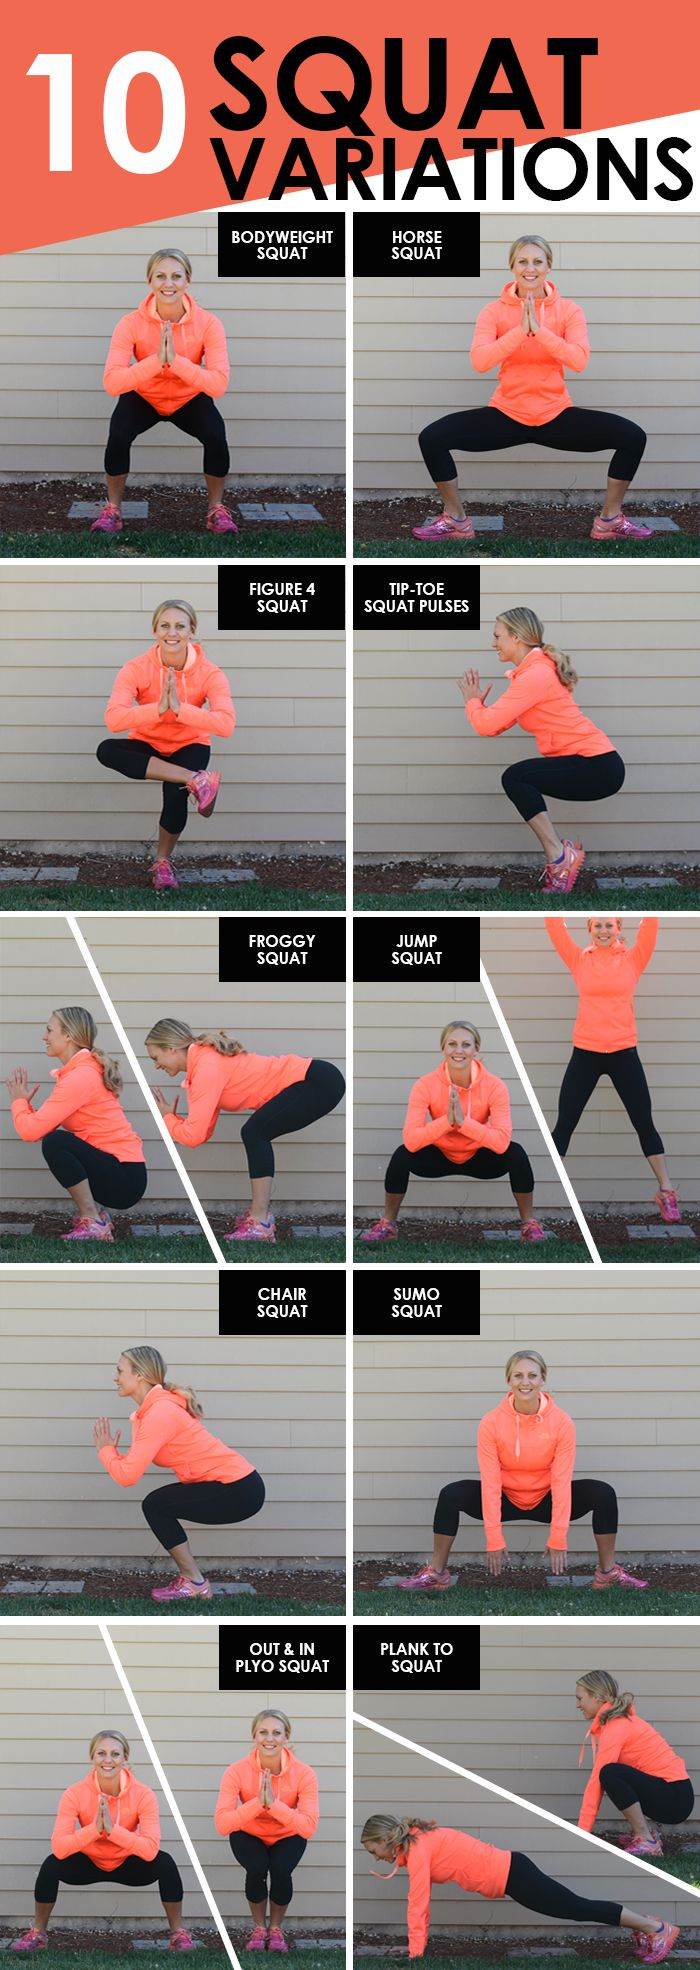 10 Squat Variations + The Northface Mountain Athletics Gear - Fit Foodie Finds